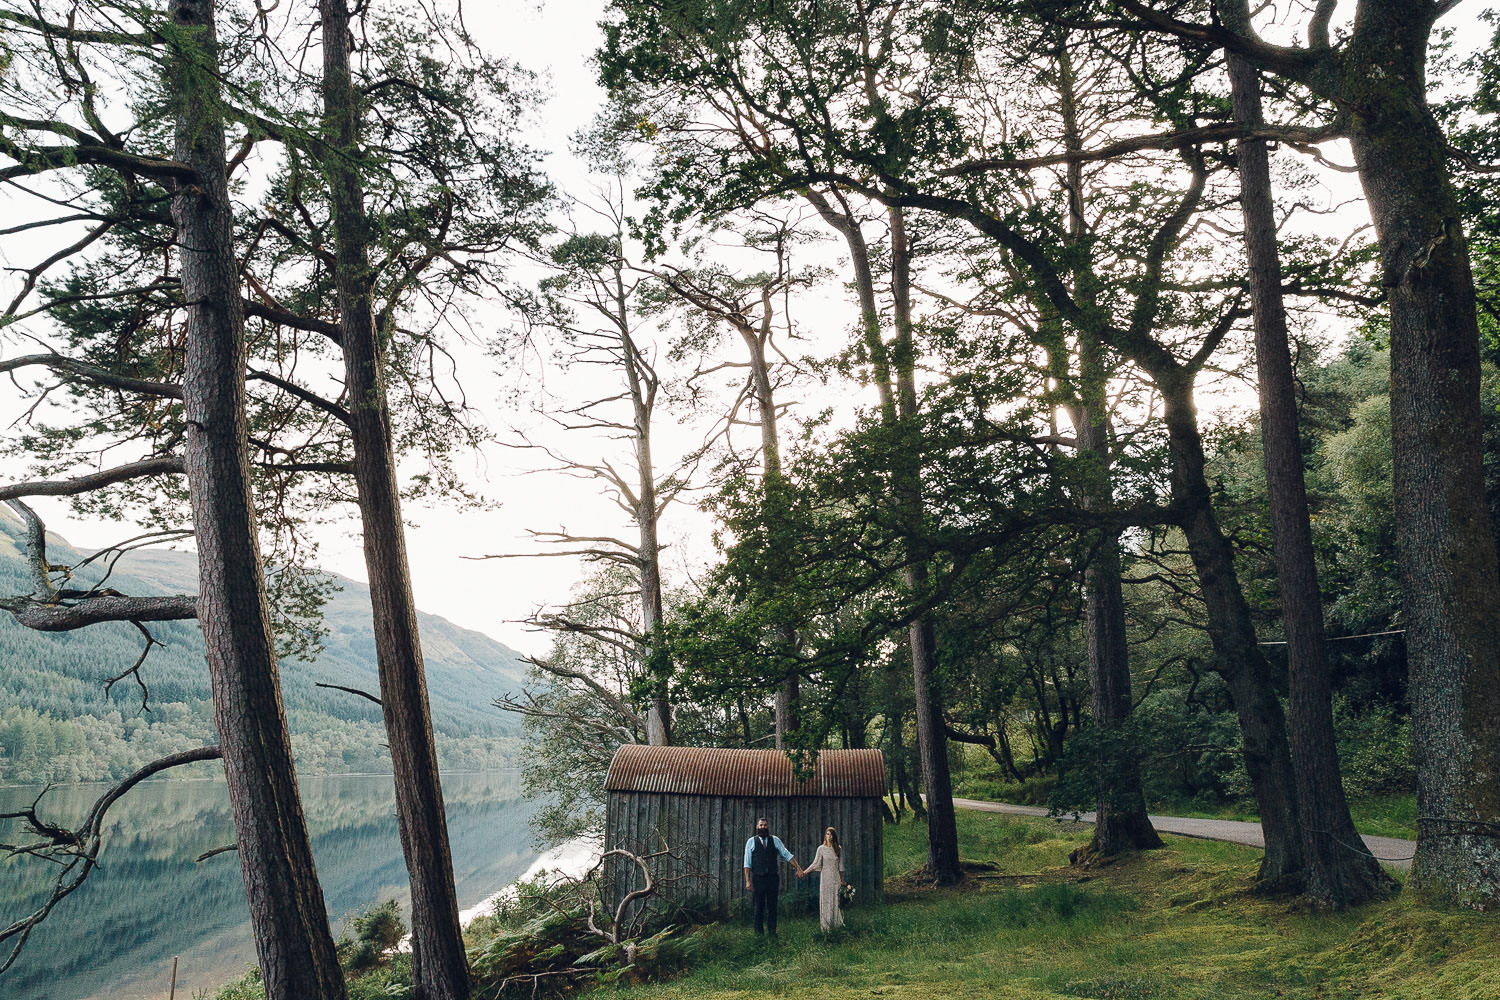 Loch-highland-elopement-wedding-10.jpg